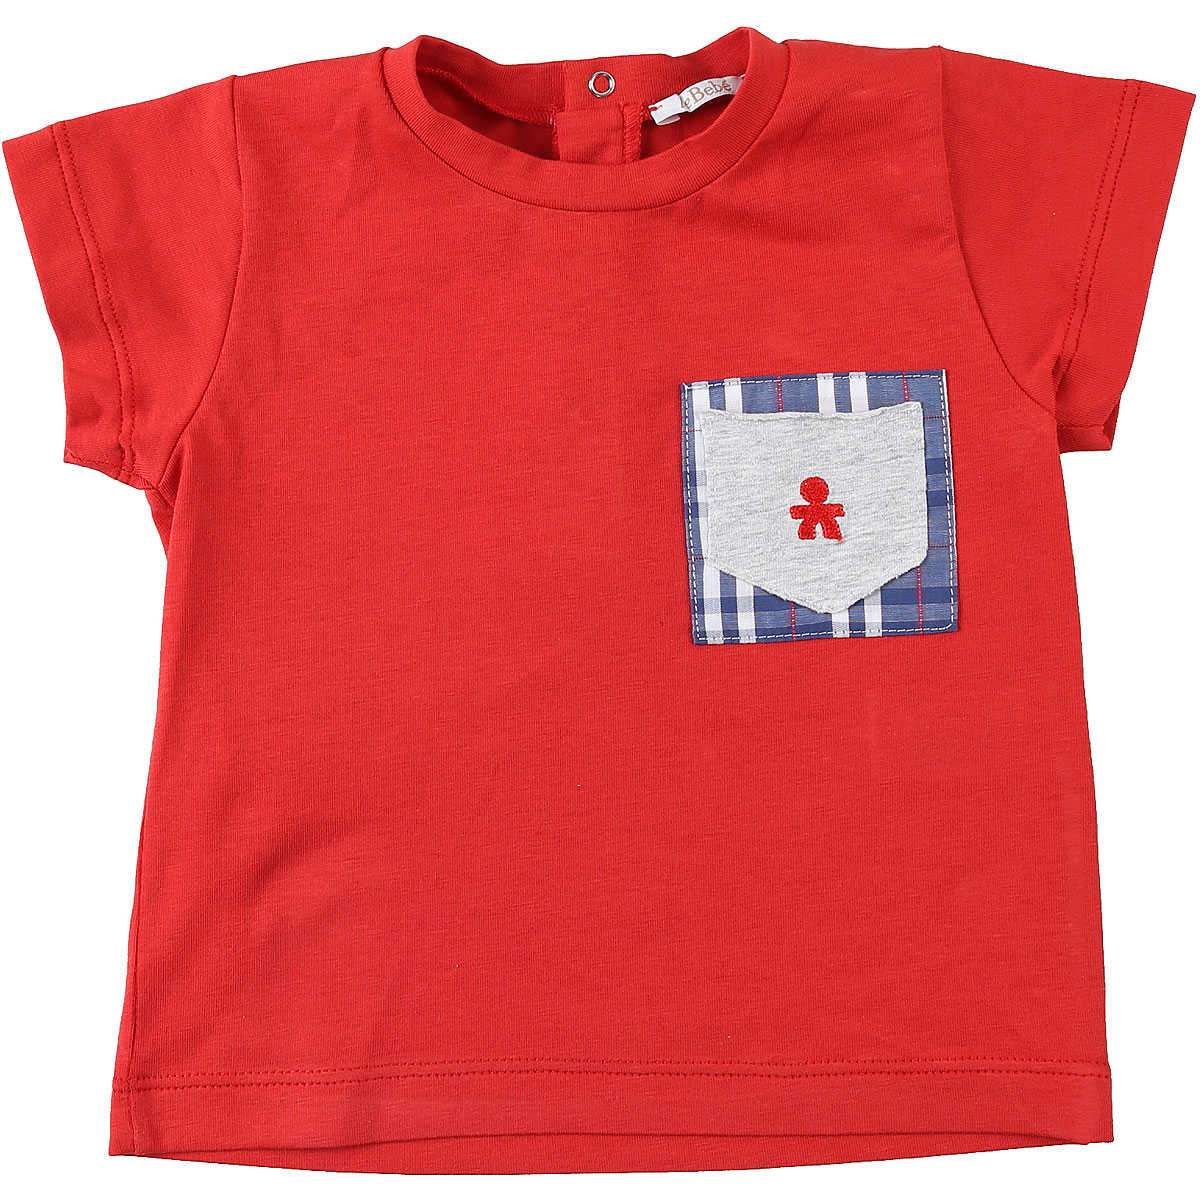 Le Bebe Baby T-Shirt for Boys On Sale Red SE - GOOFASH